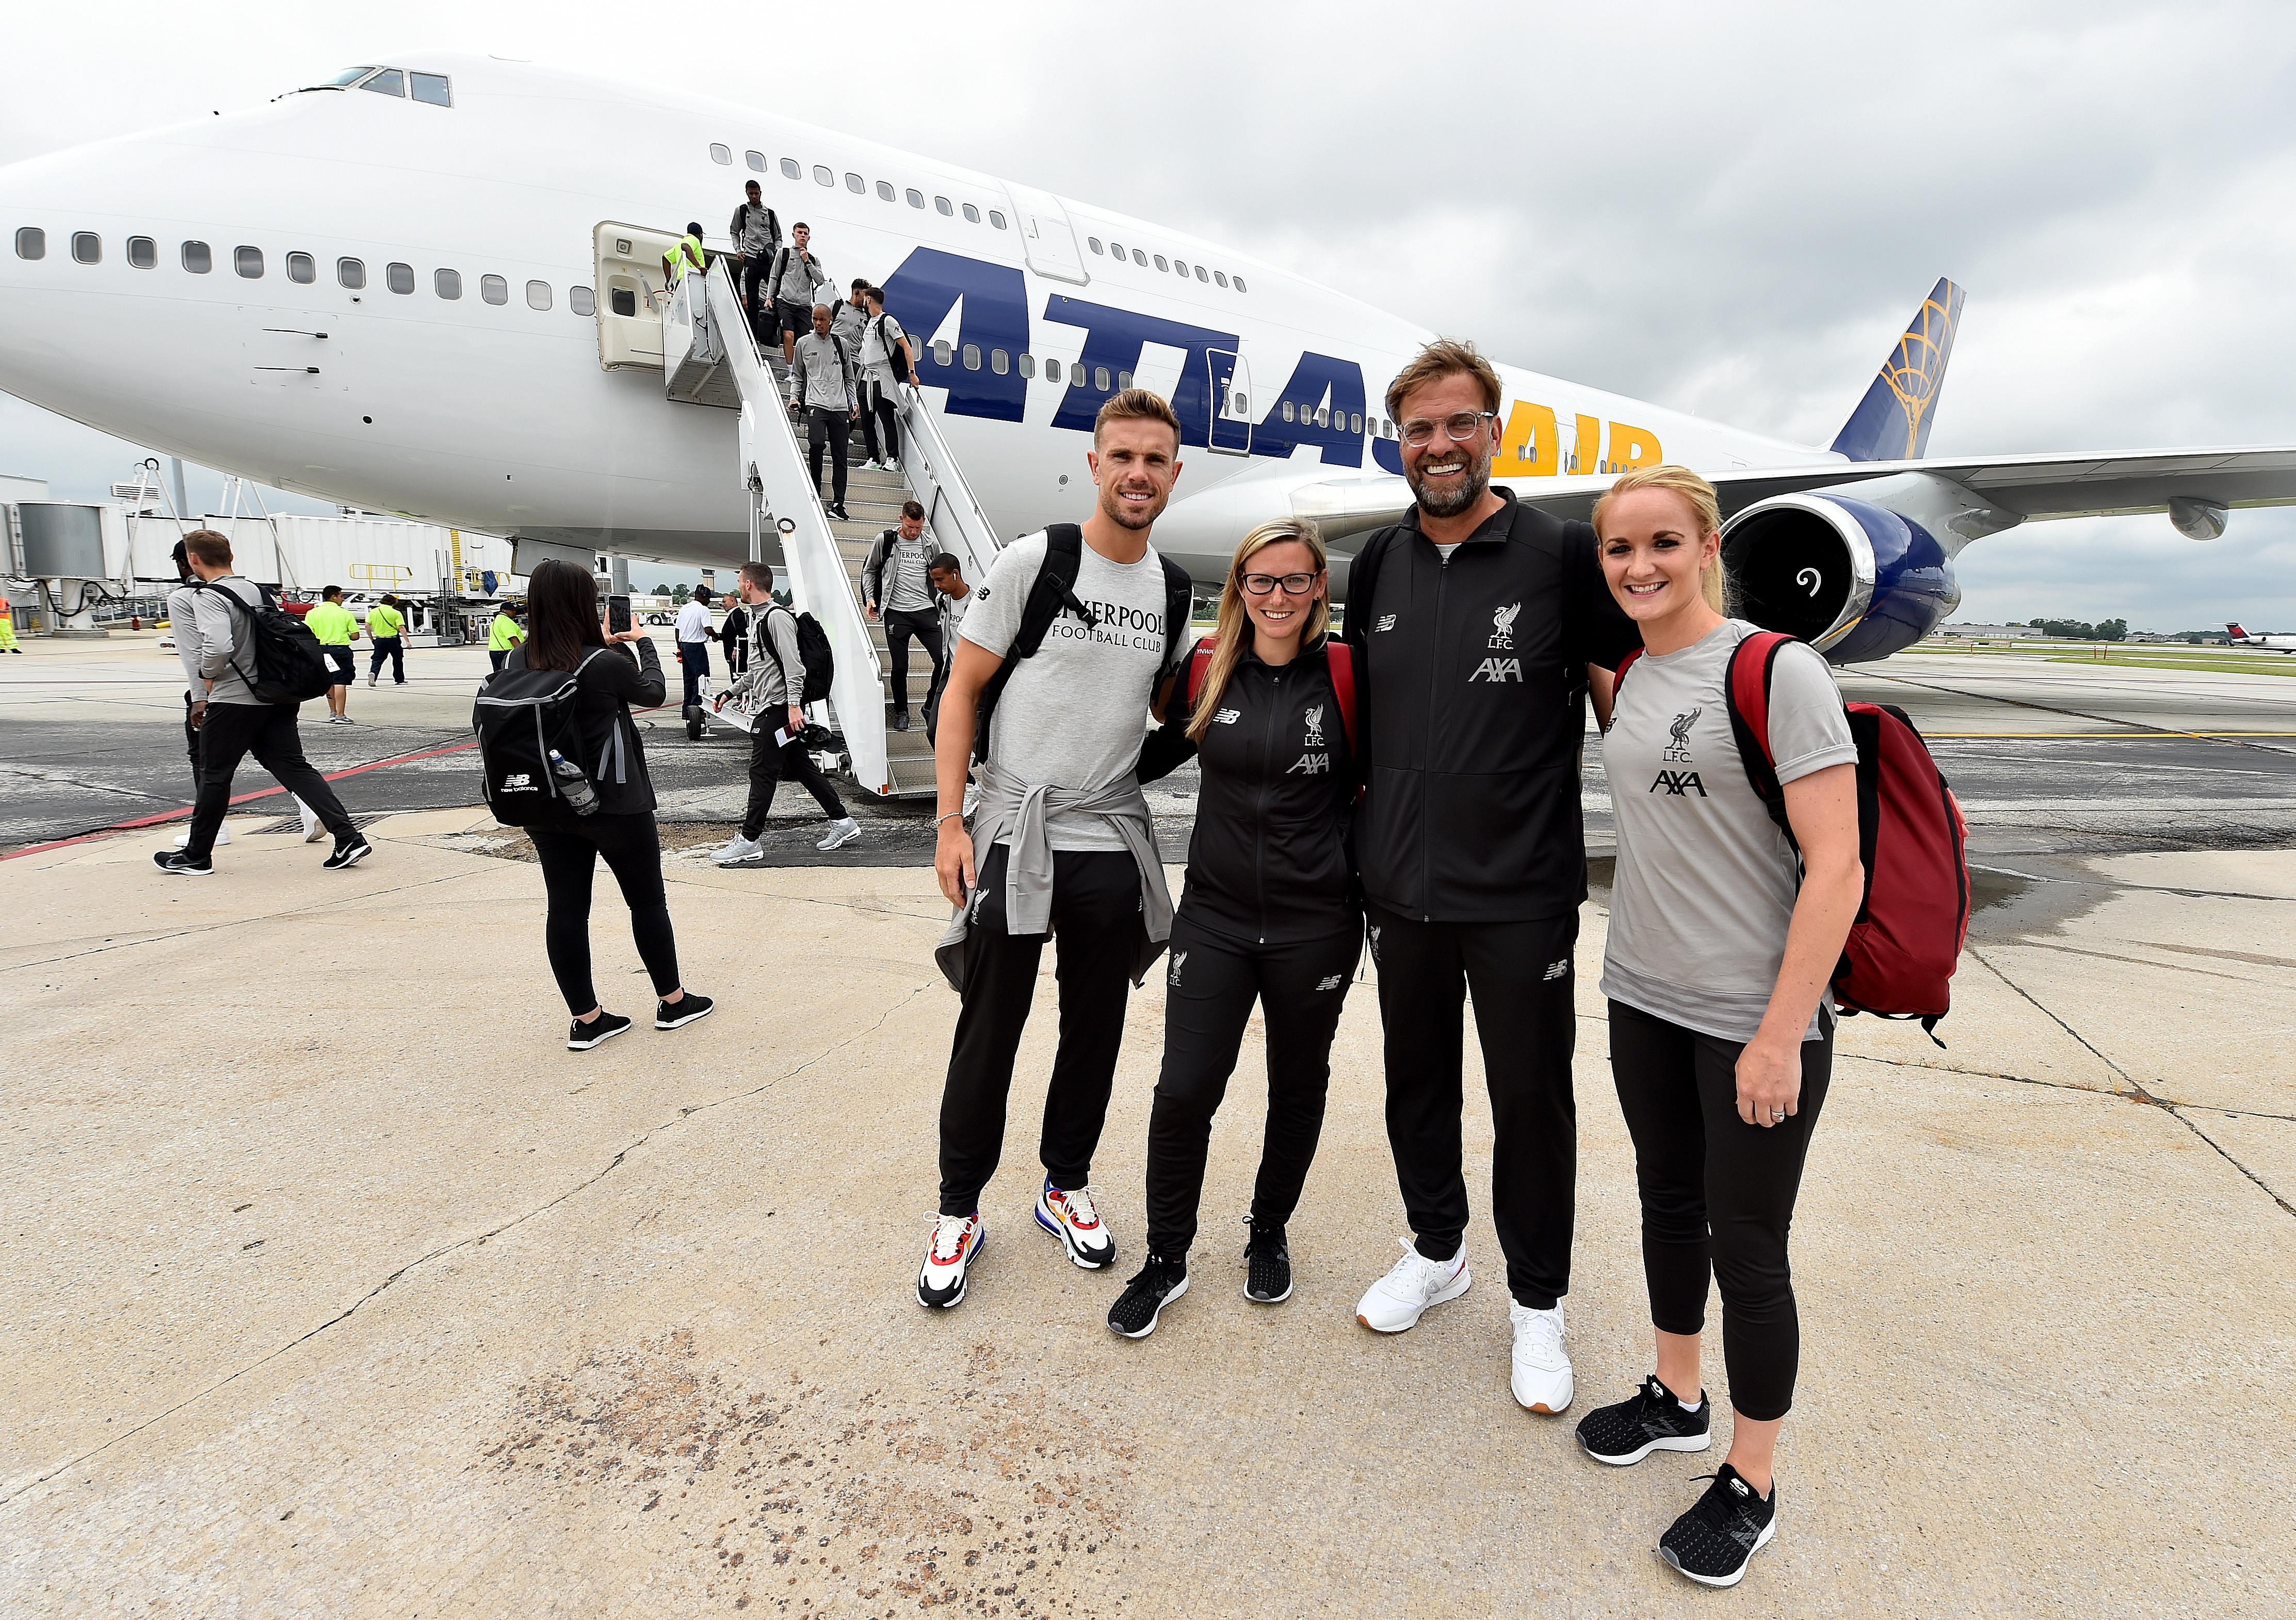 Liverpool Managers and Captains Arrive in South bend for Their Pre-Season US Tour